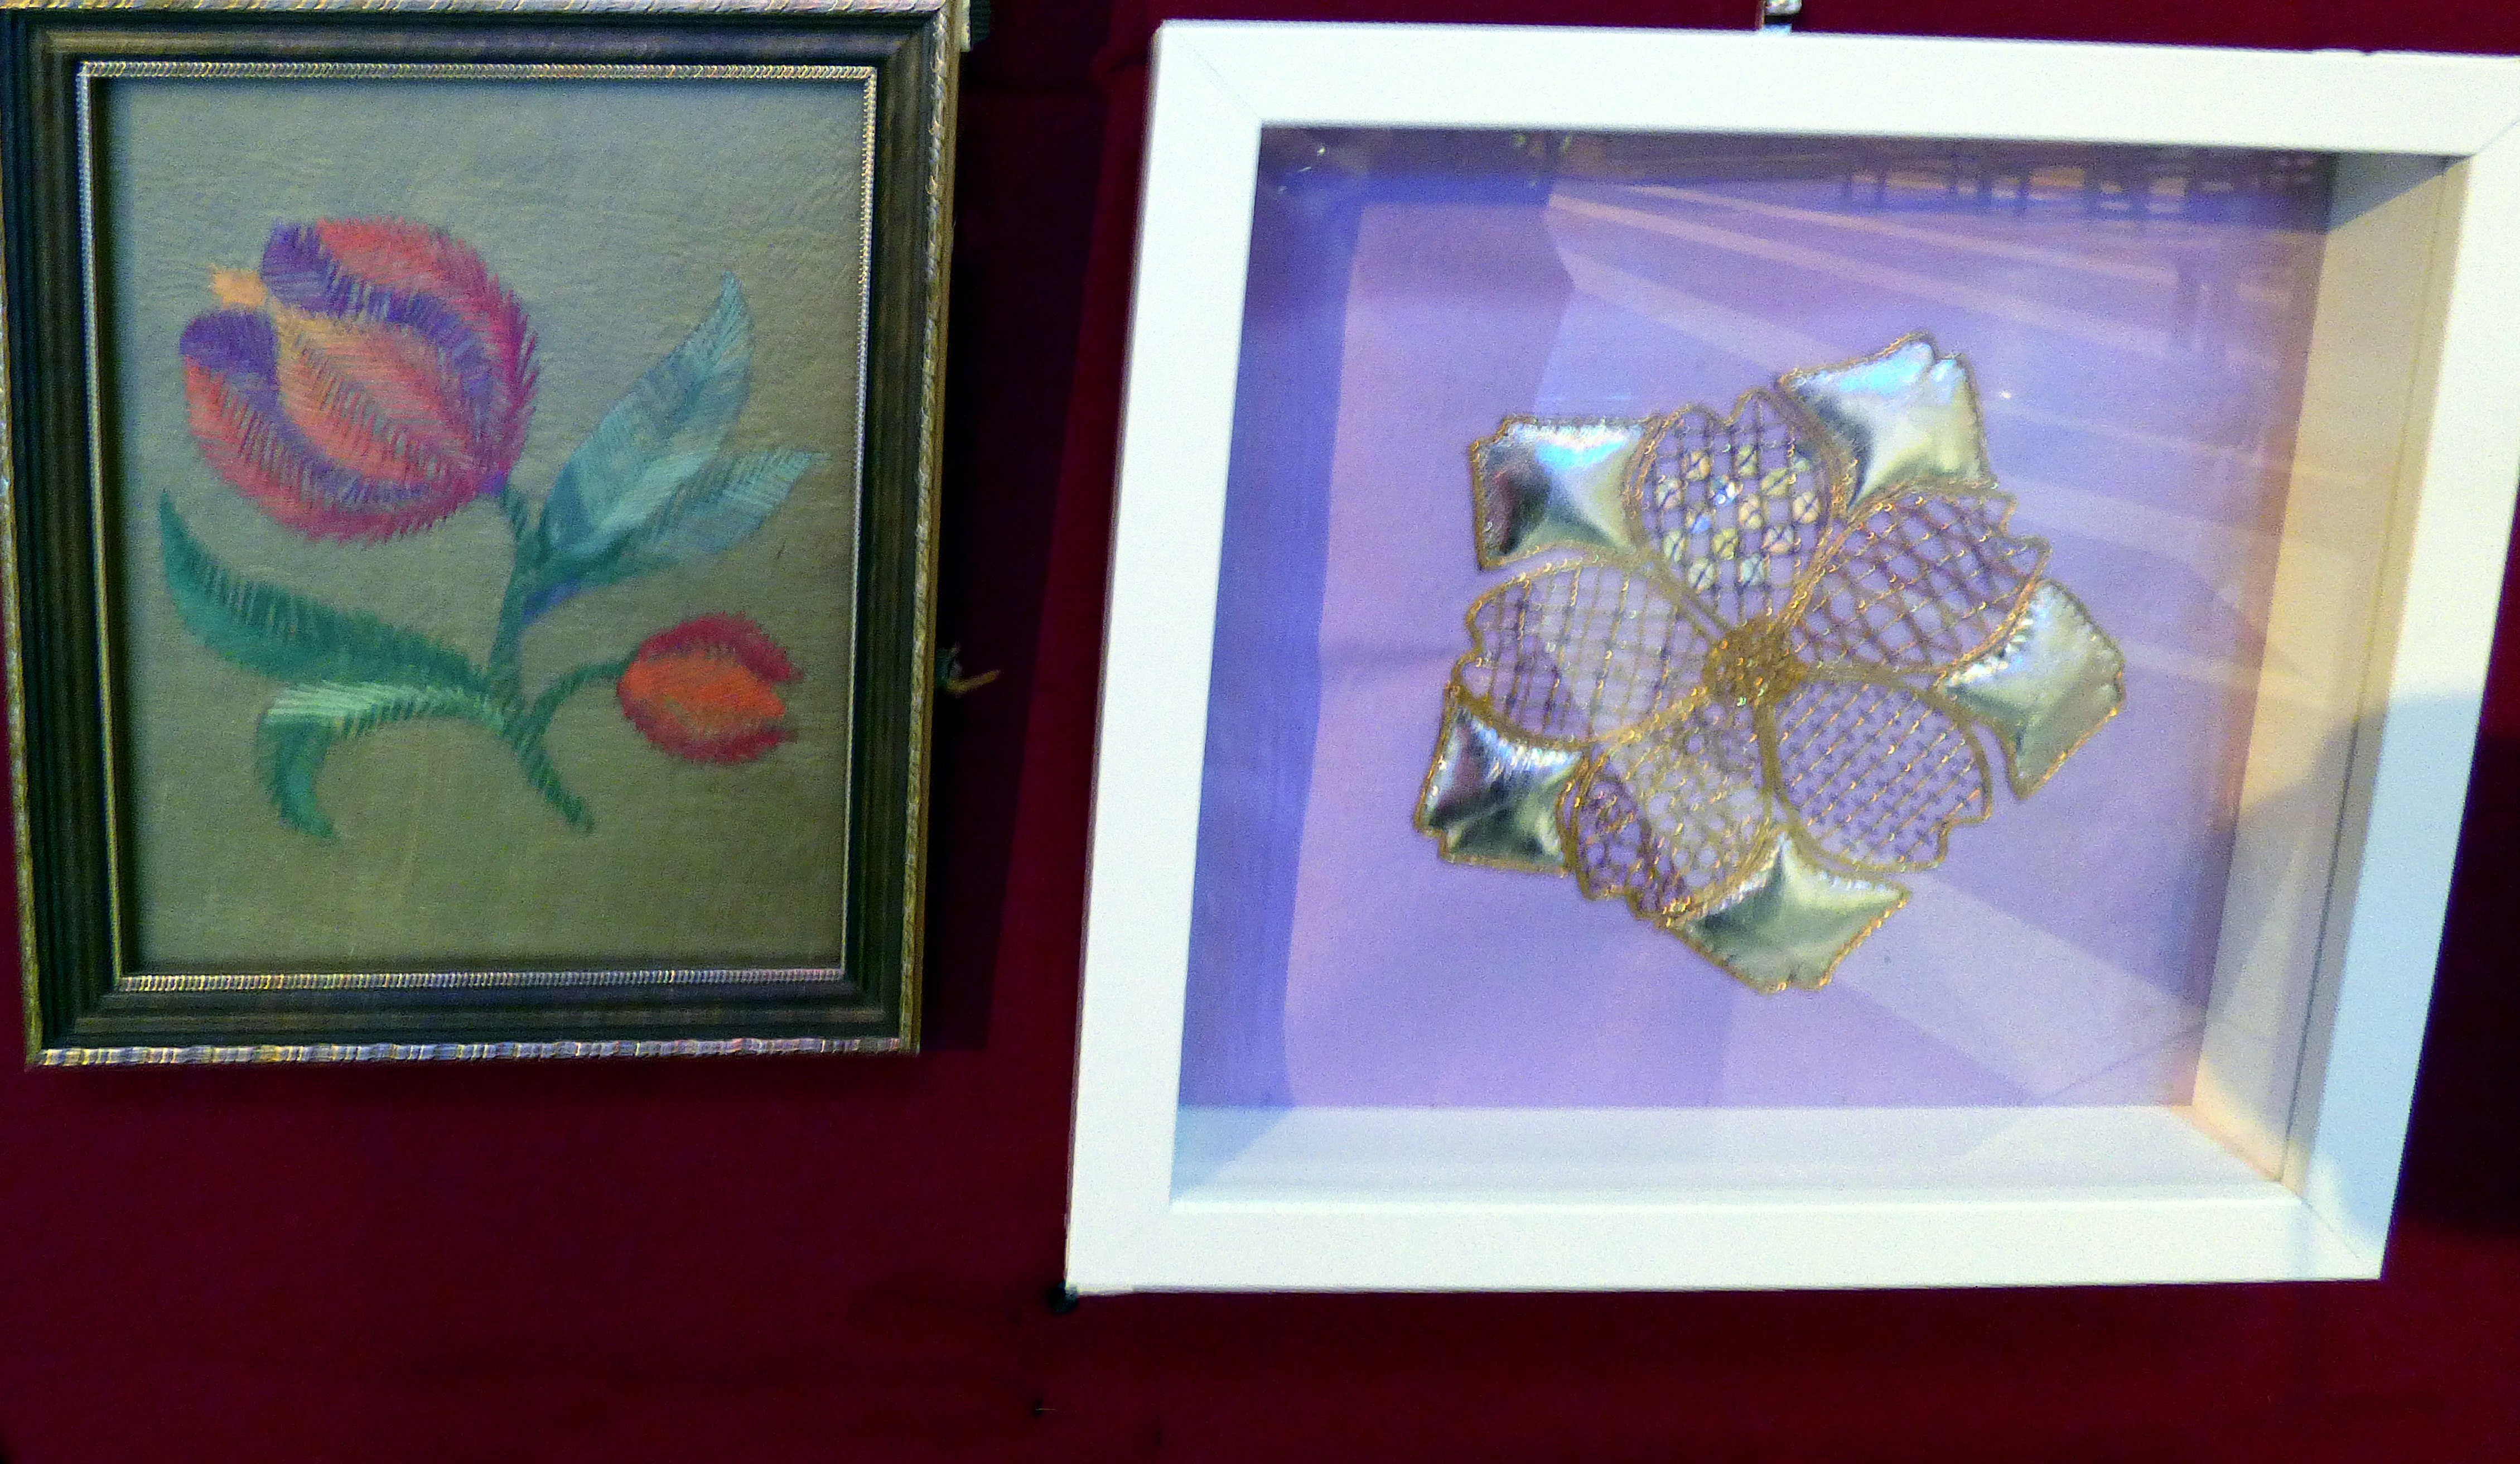 CREWELWORK by F.Trotman and GOLDWORK by S.Maloney , at Embroidery for Pleasure exhibition, Liverpool Metropolitan Cathedral 2016